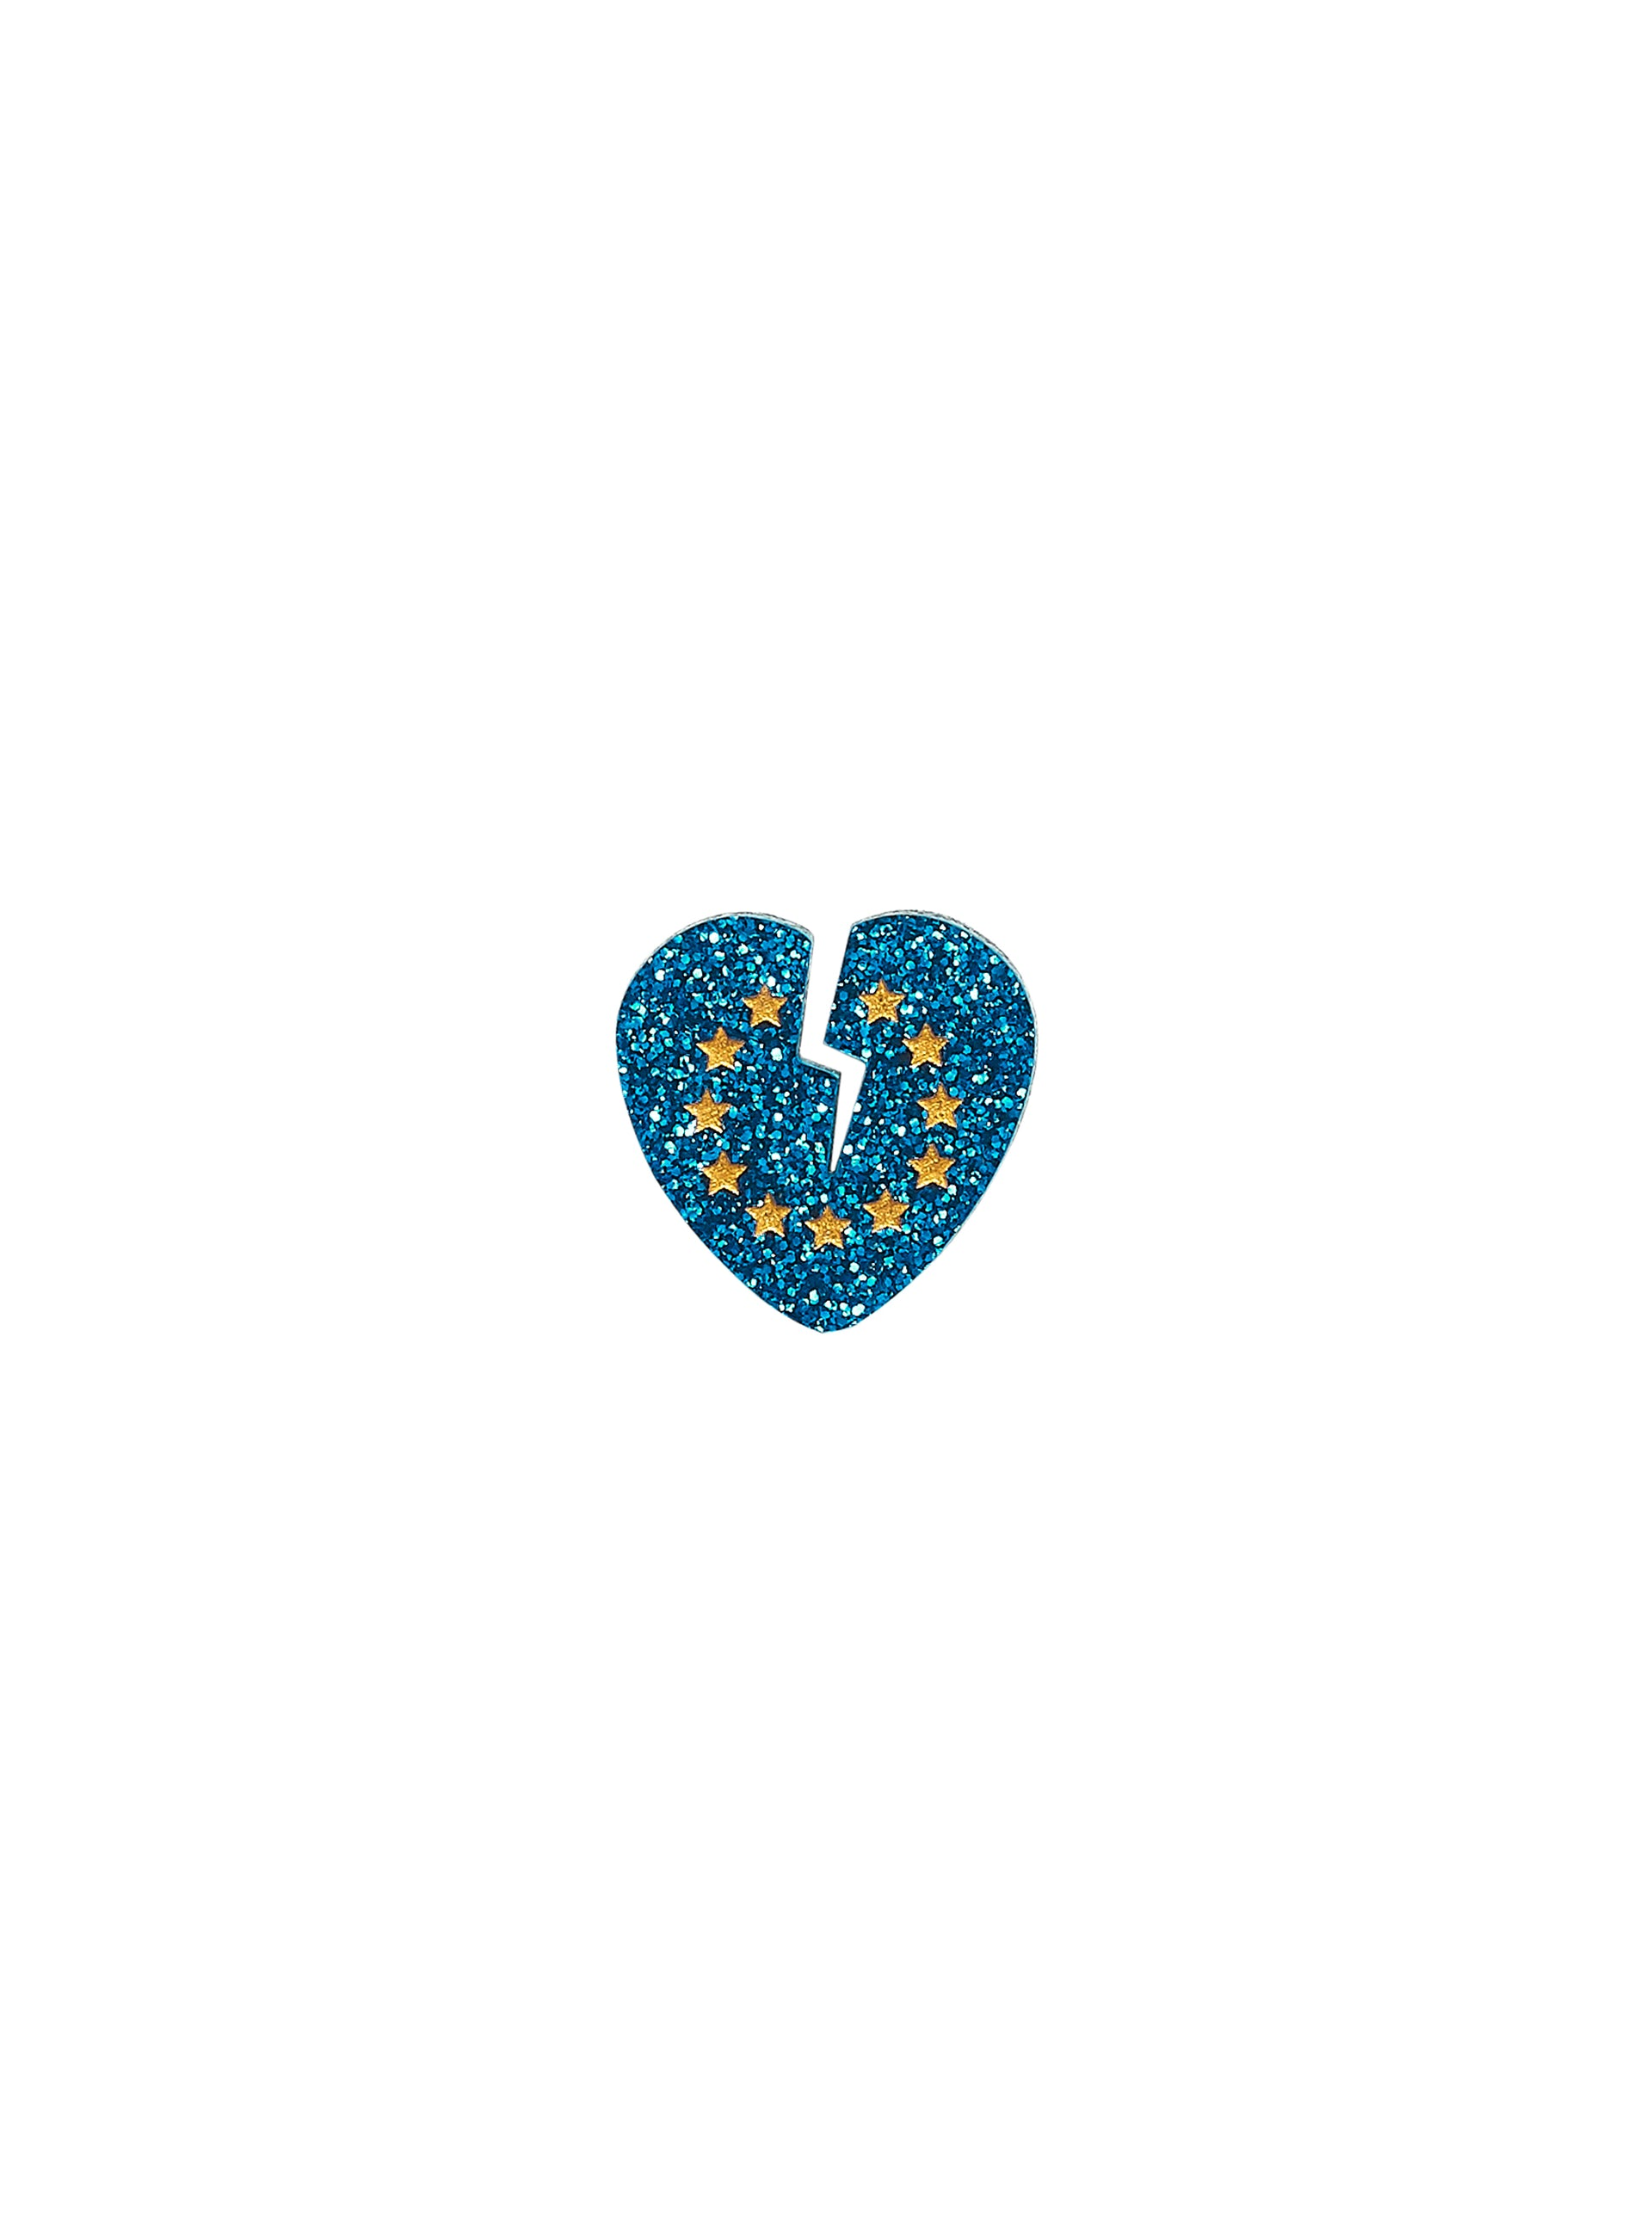 Heart Broken for EU Brooch